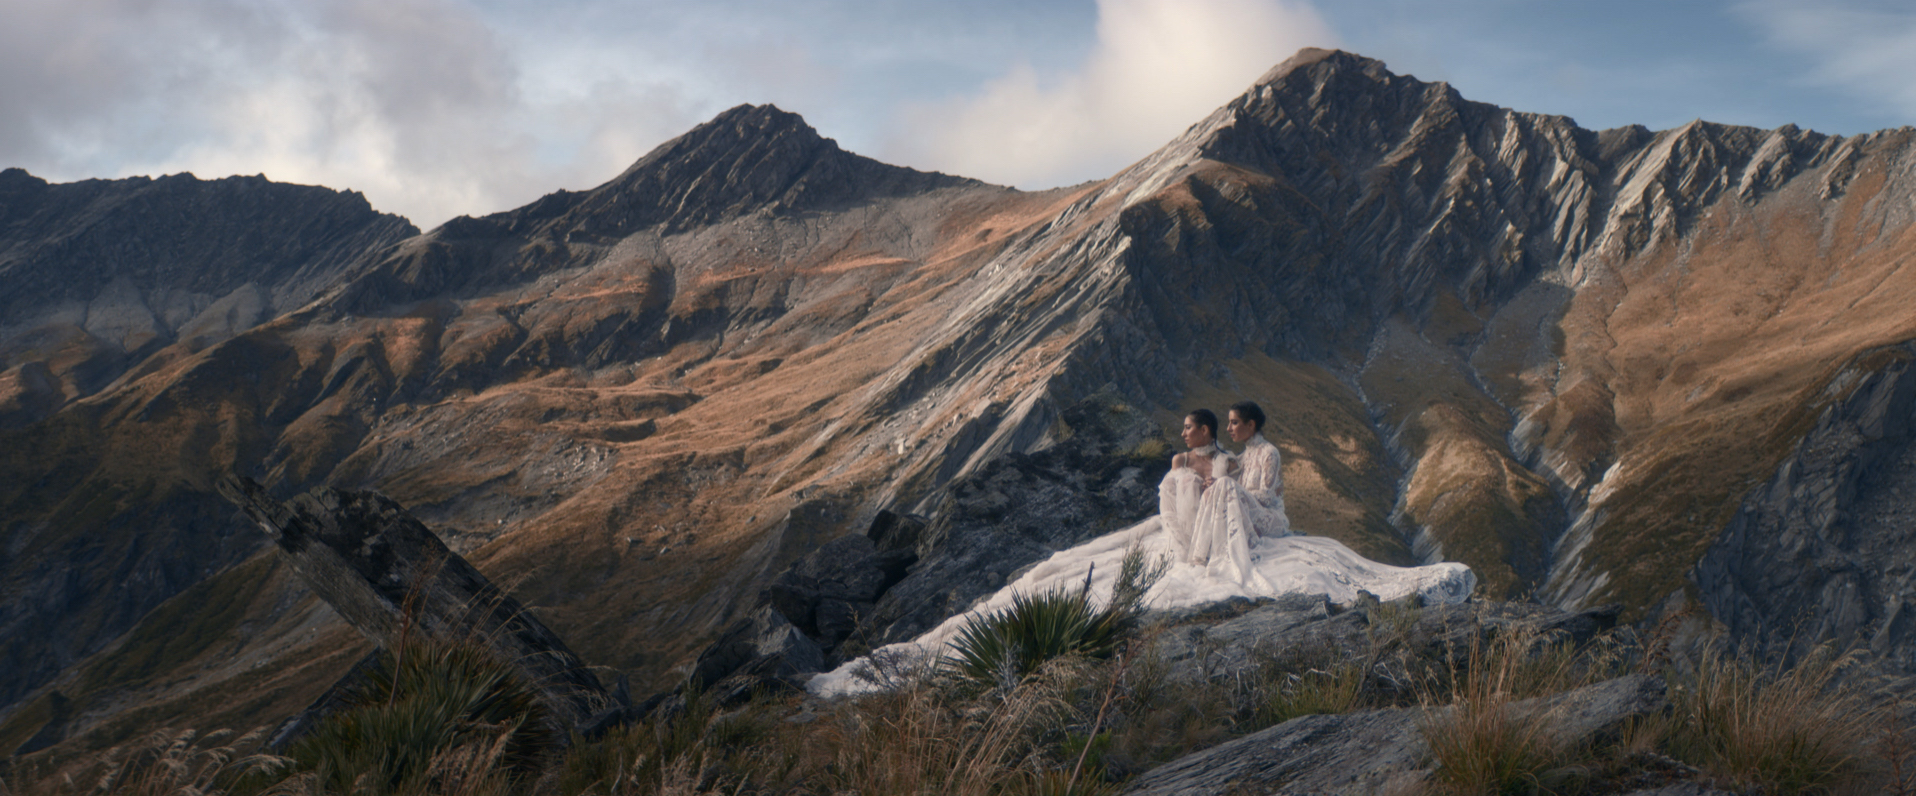 New Zealand is the backdrop for The Veronica's latest music video directed by AIRBAG's Benn Jae